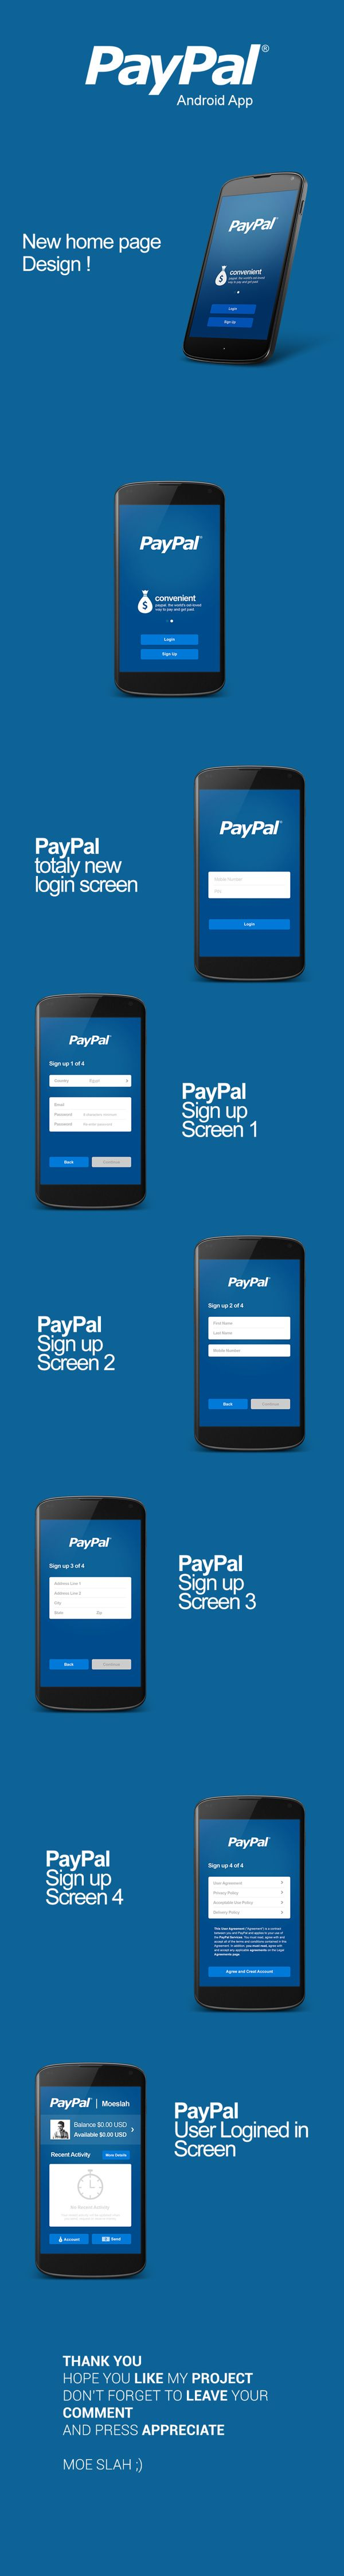 PayPal Android App UI design by Moe slah, via Behance